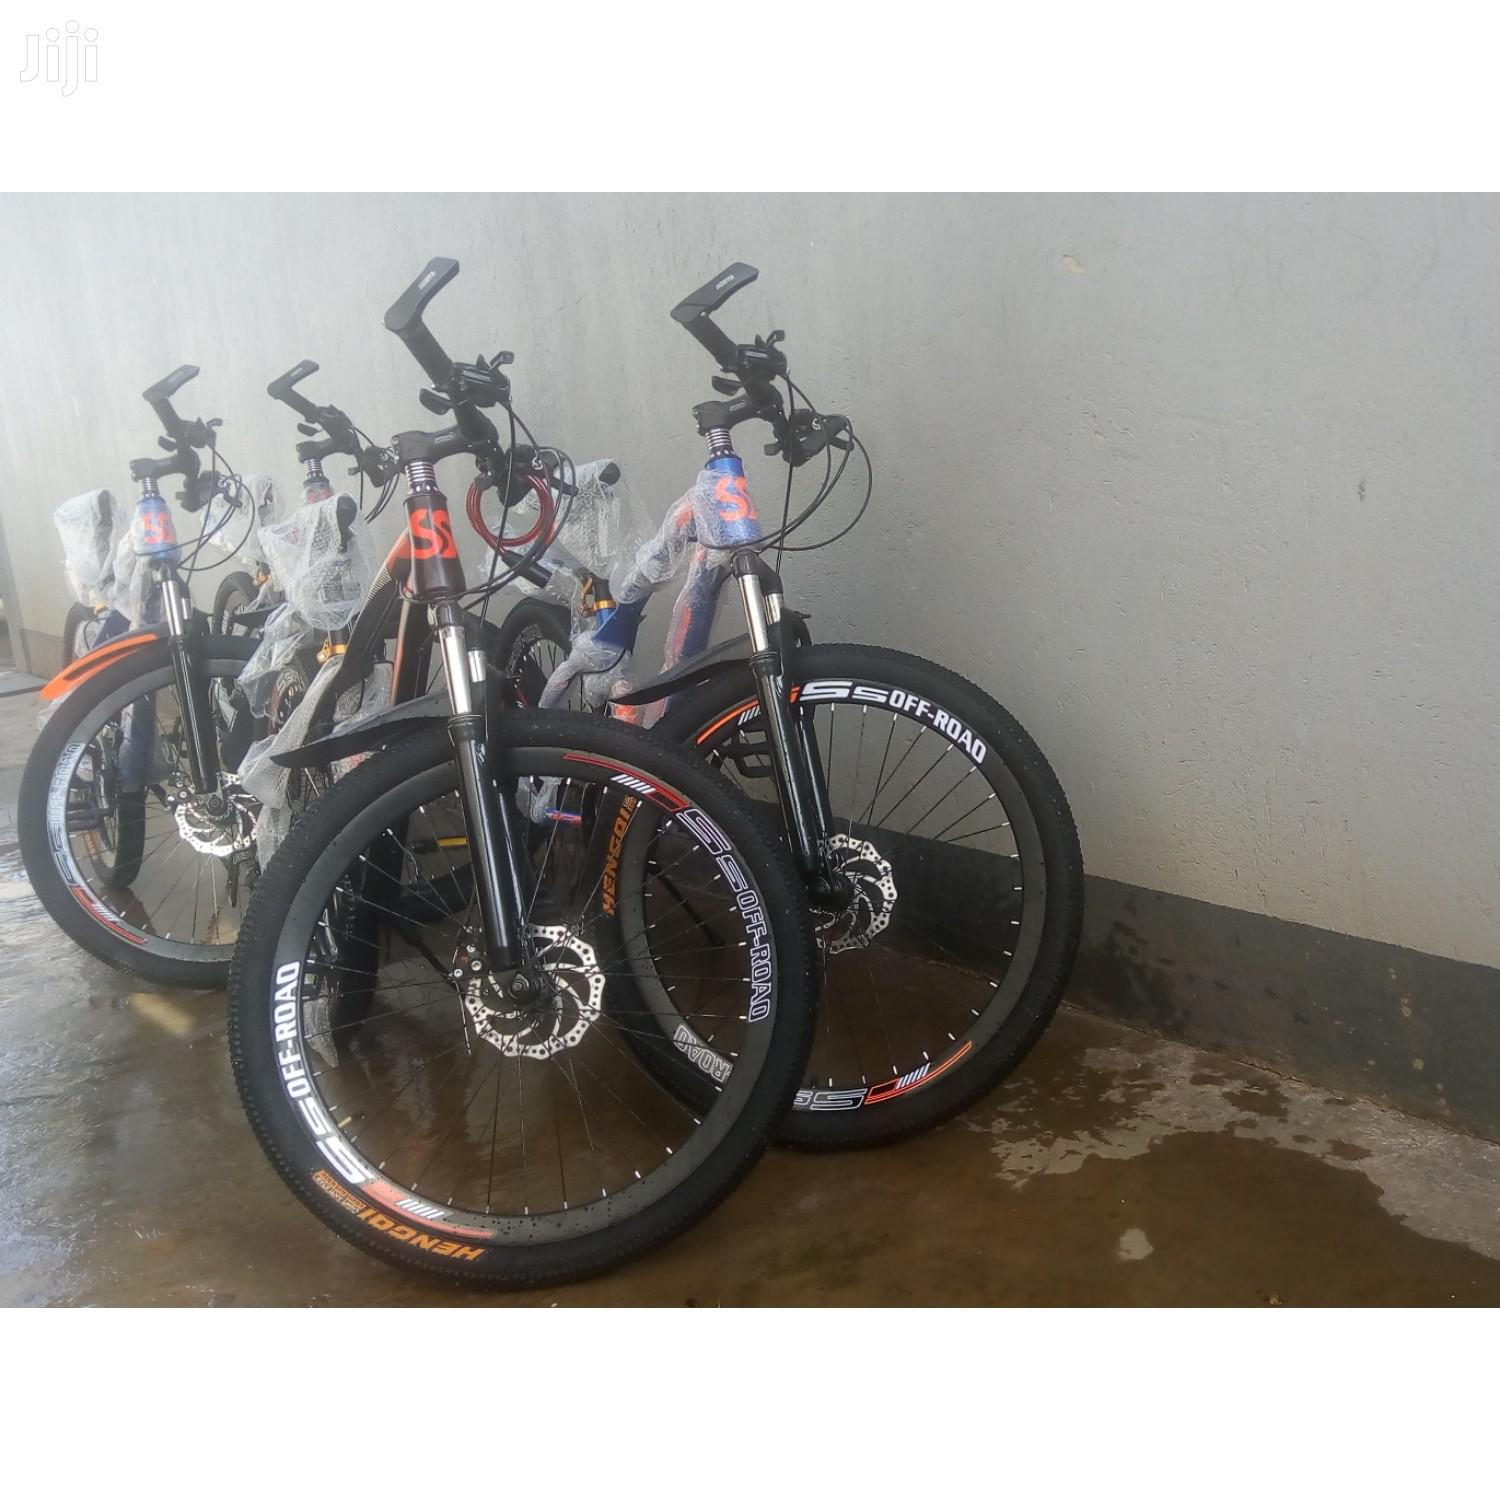 New Mtb Sport Bikes For Sale | Sports Equipment for sale in Kampala, Central Region, Uganda